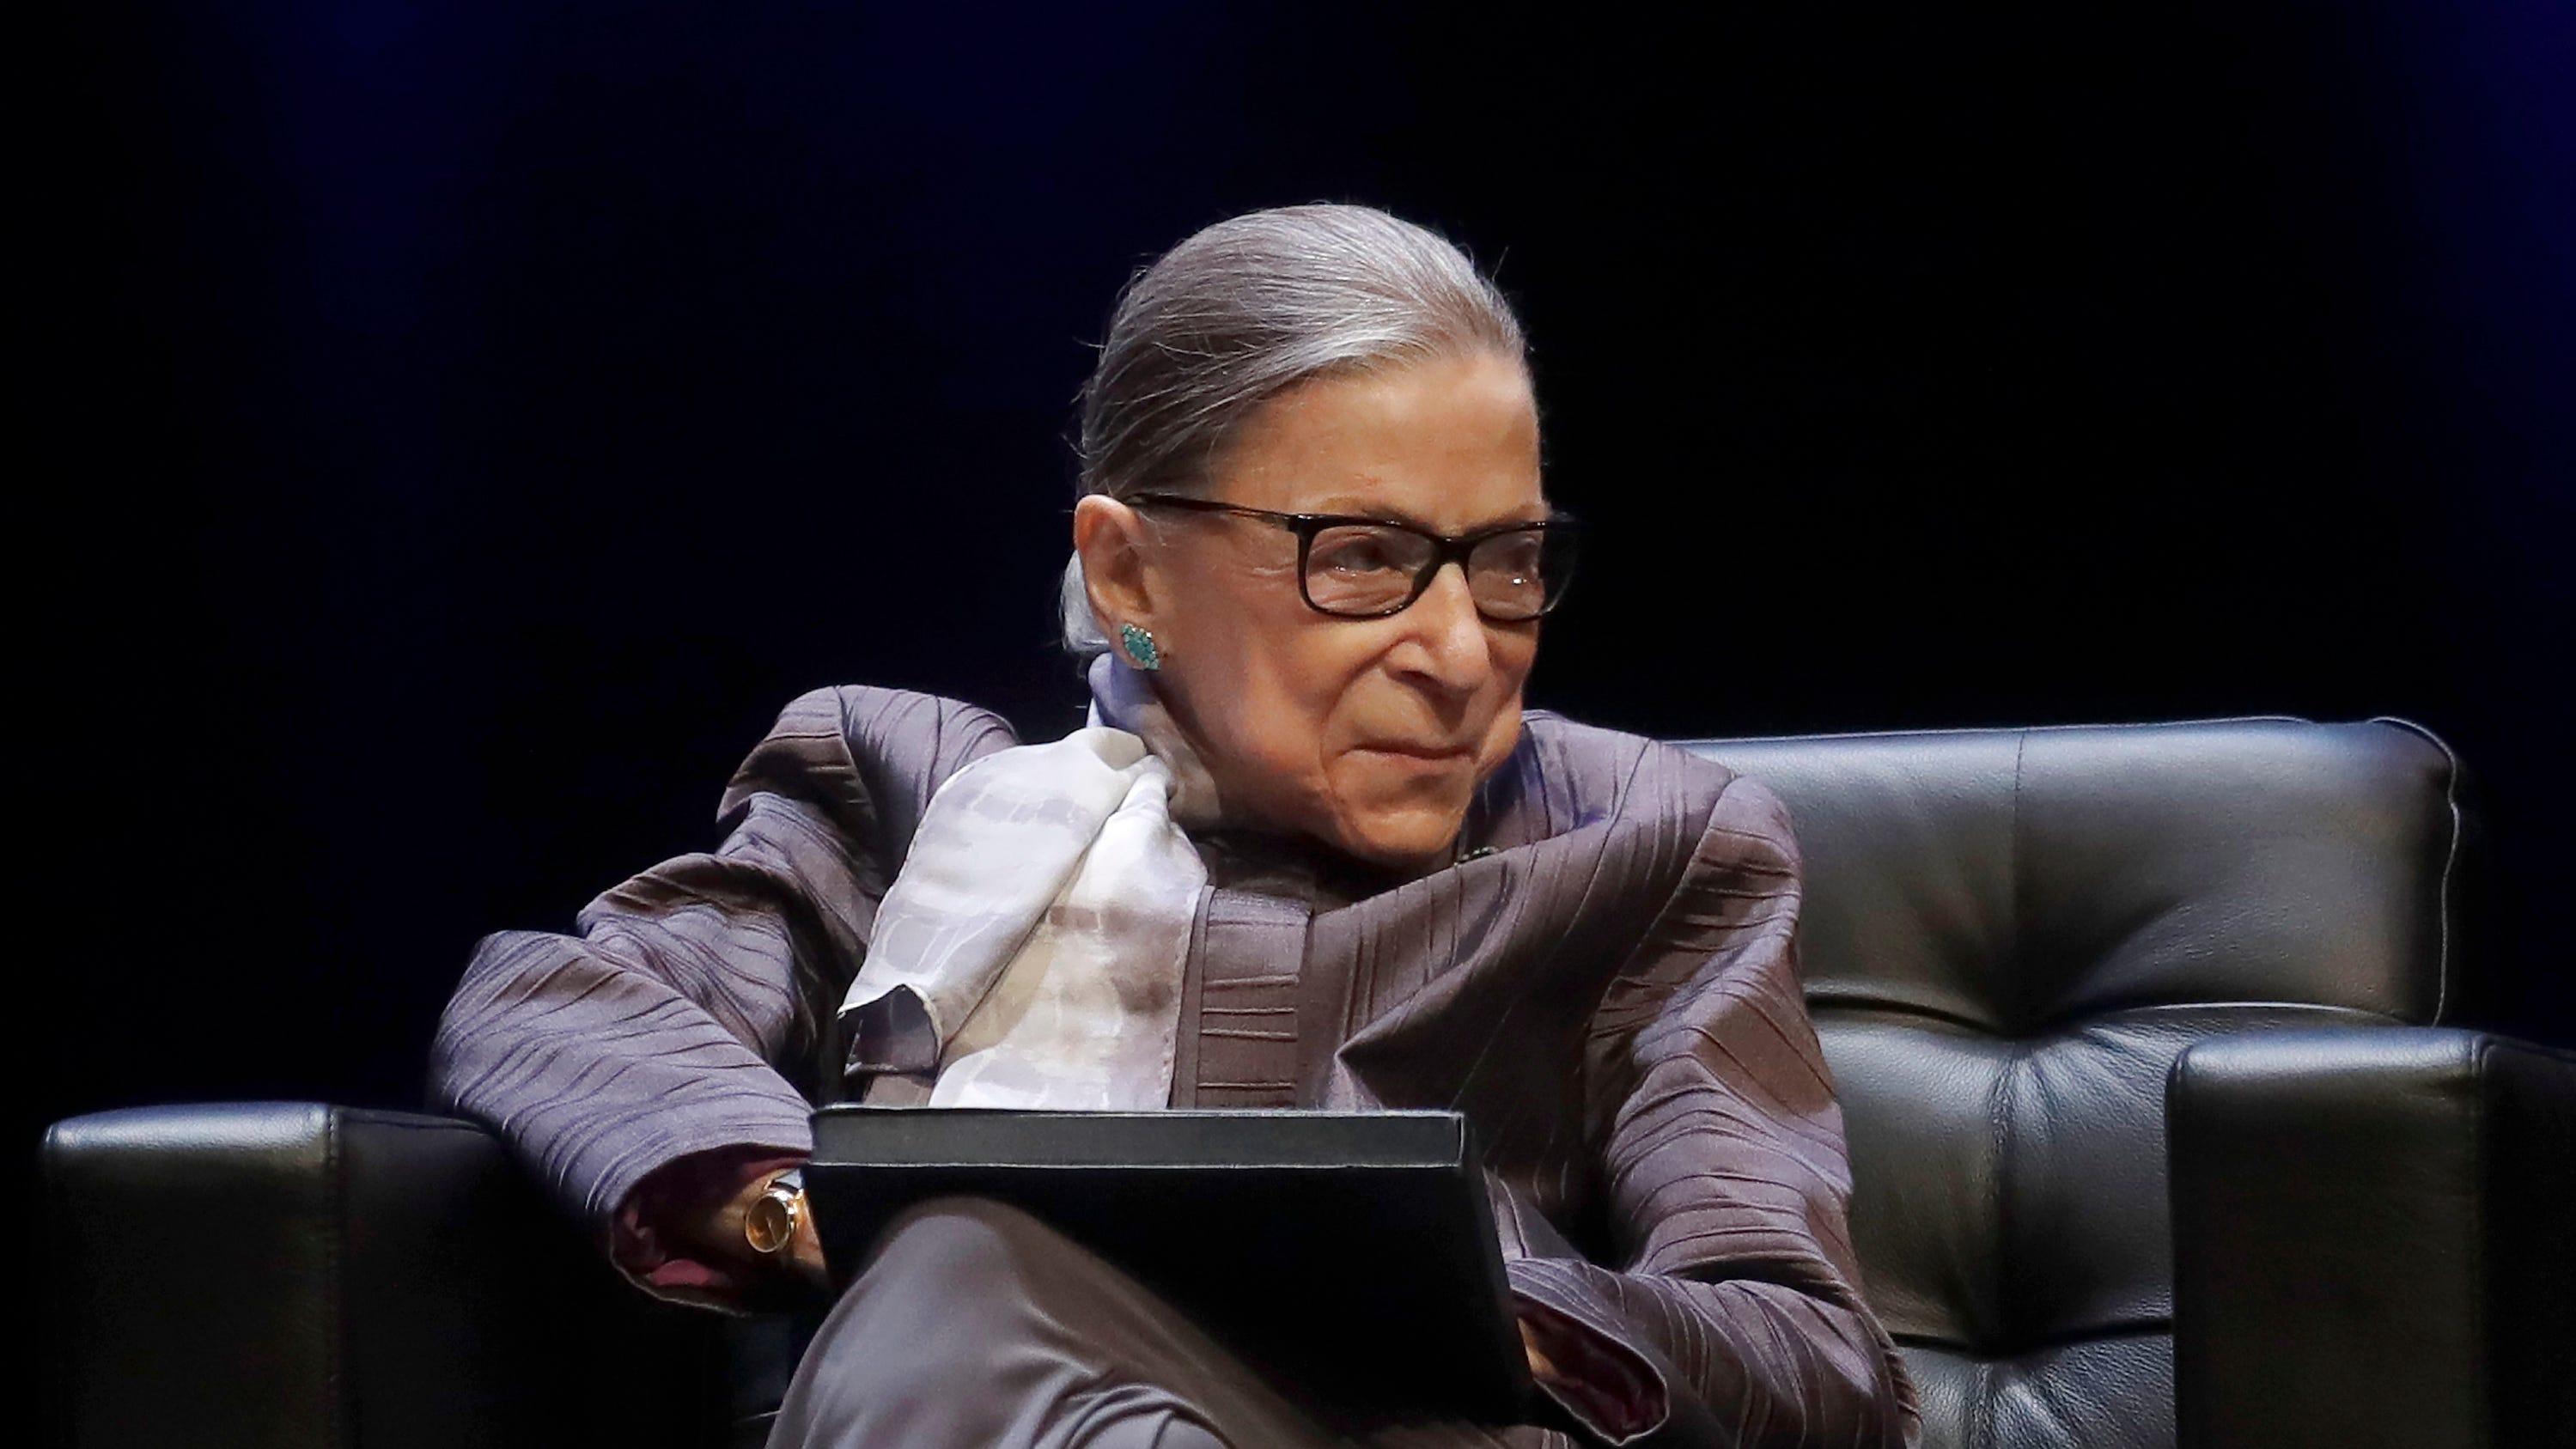 Supreme Court Justice Ruth Bader Ginsburg dies, setting up nomination fight